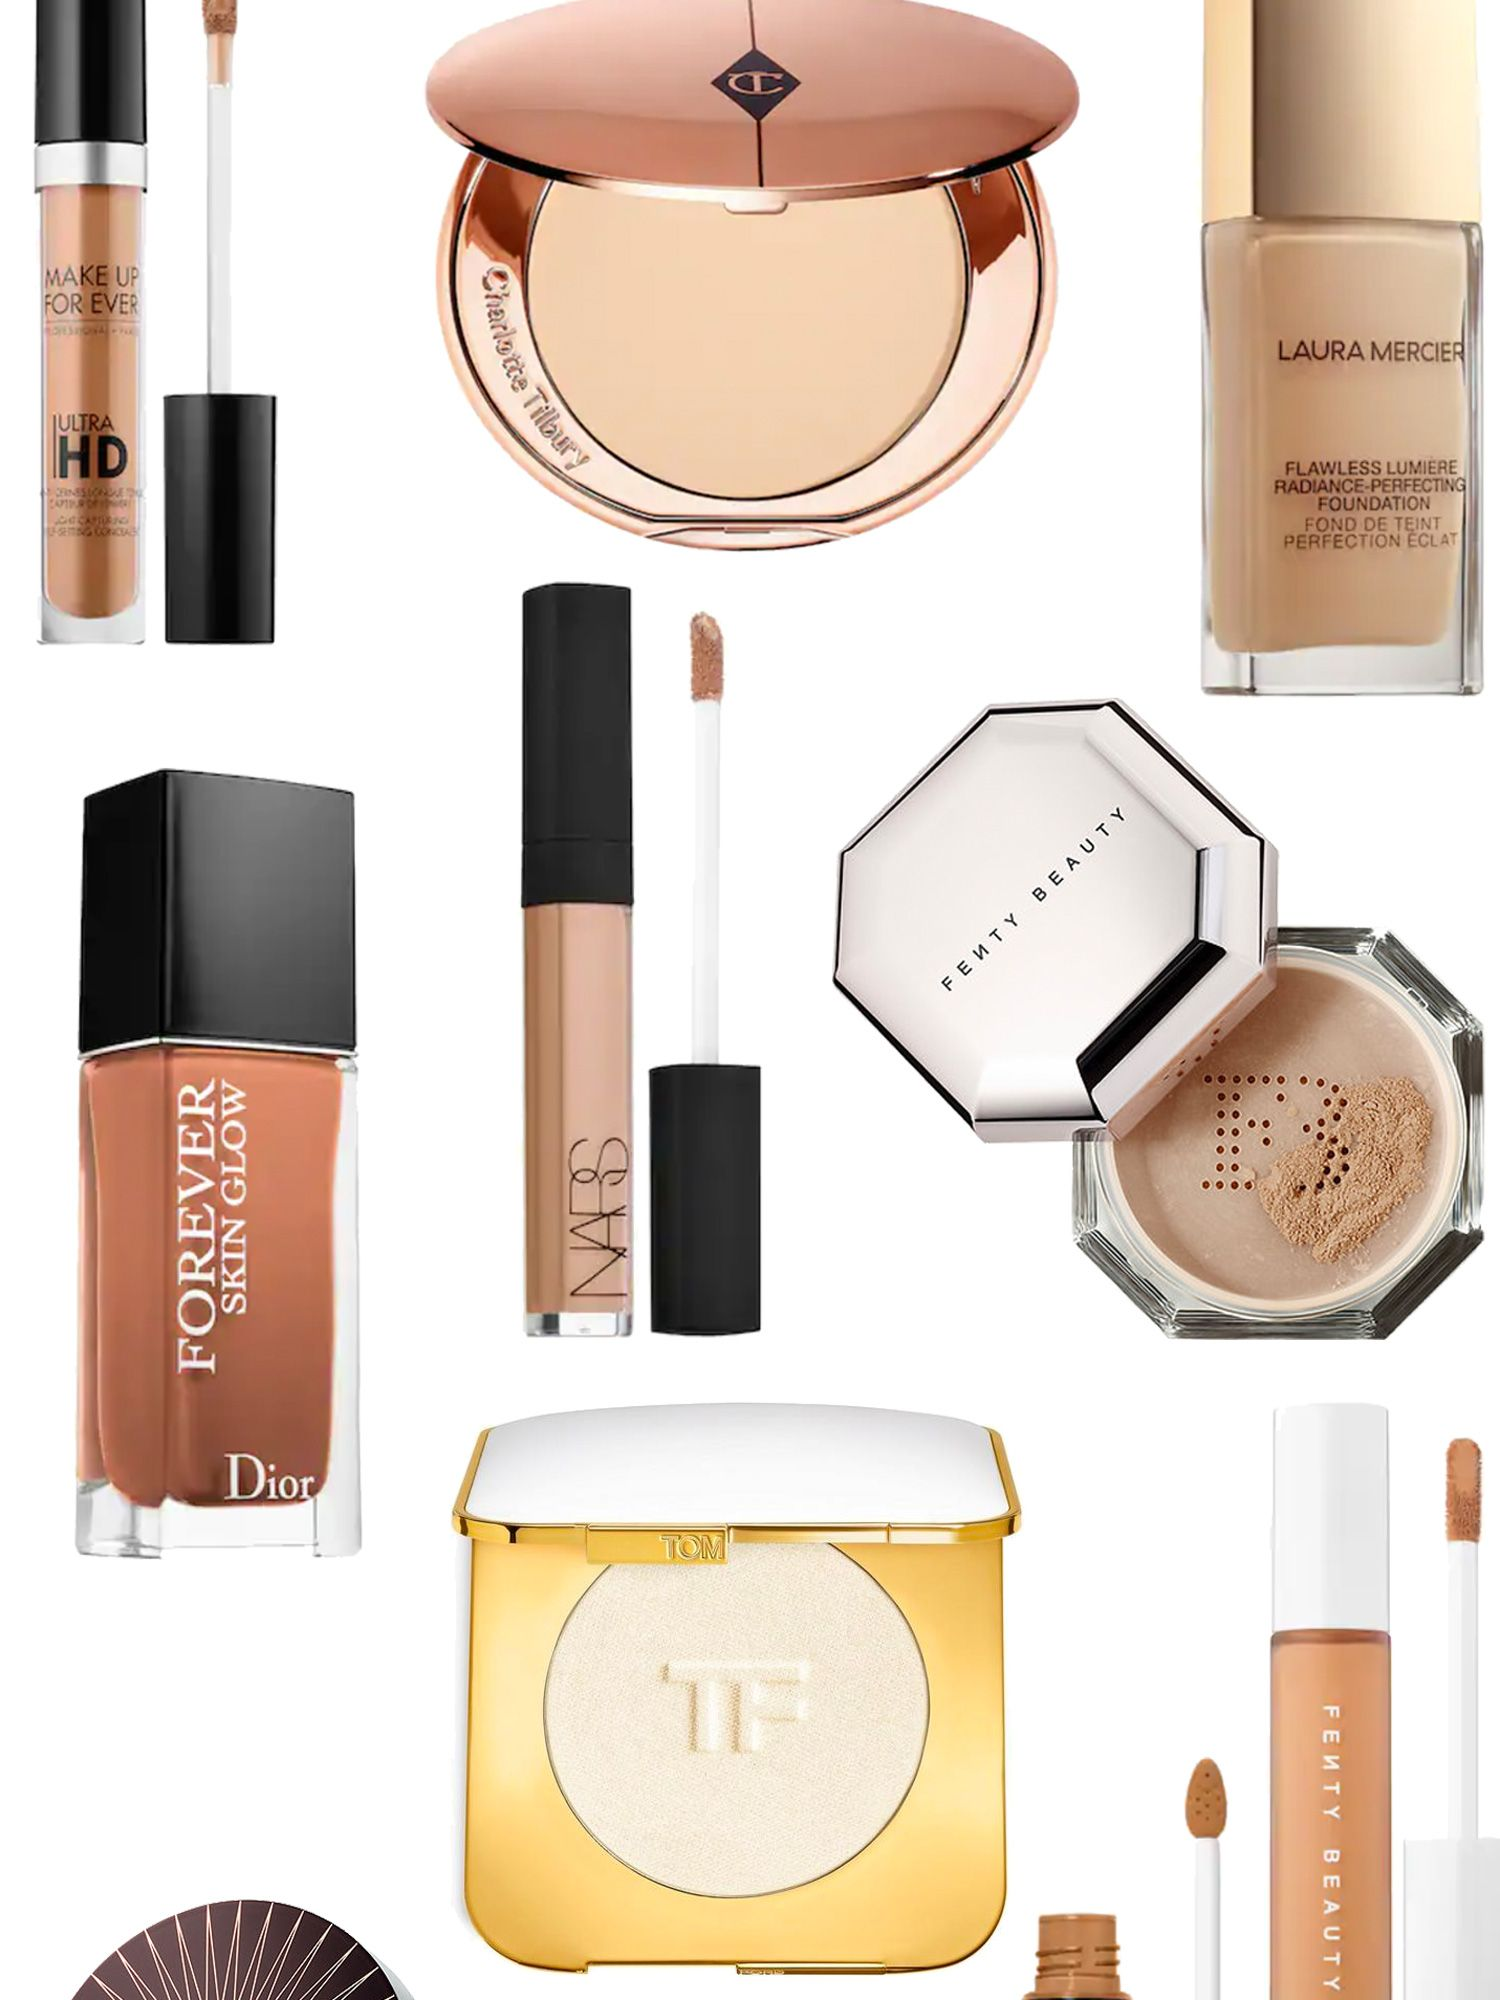 10 Must Haves For A Flawless Face Beautiful Makeup Search Mac Makeup Contouring And Highlighting Foundation For Oily Skin